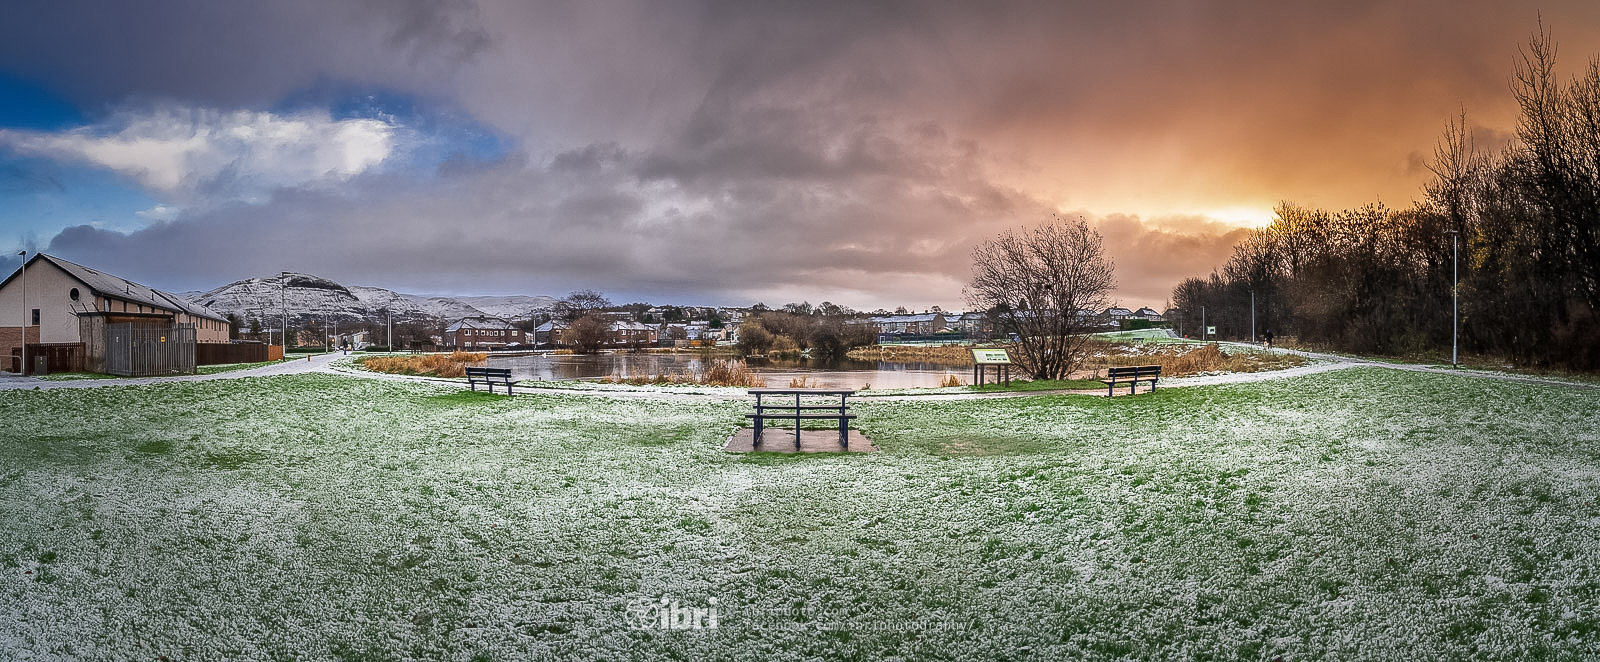 The morning after the first winter storm. Panoramic stitch of the local village pond just after sunrise on a quiet and chilly Sunday morning.